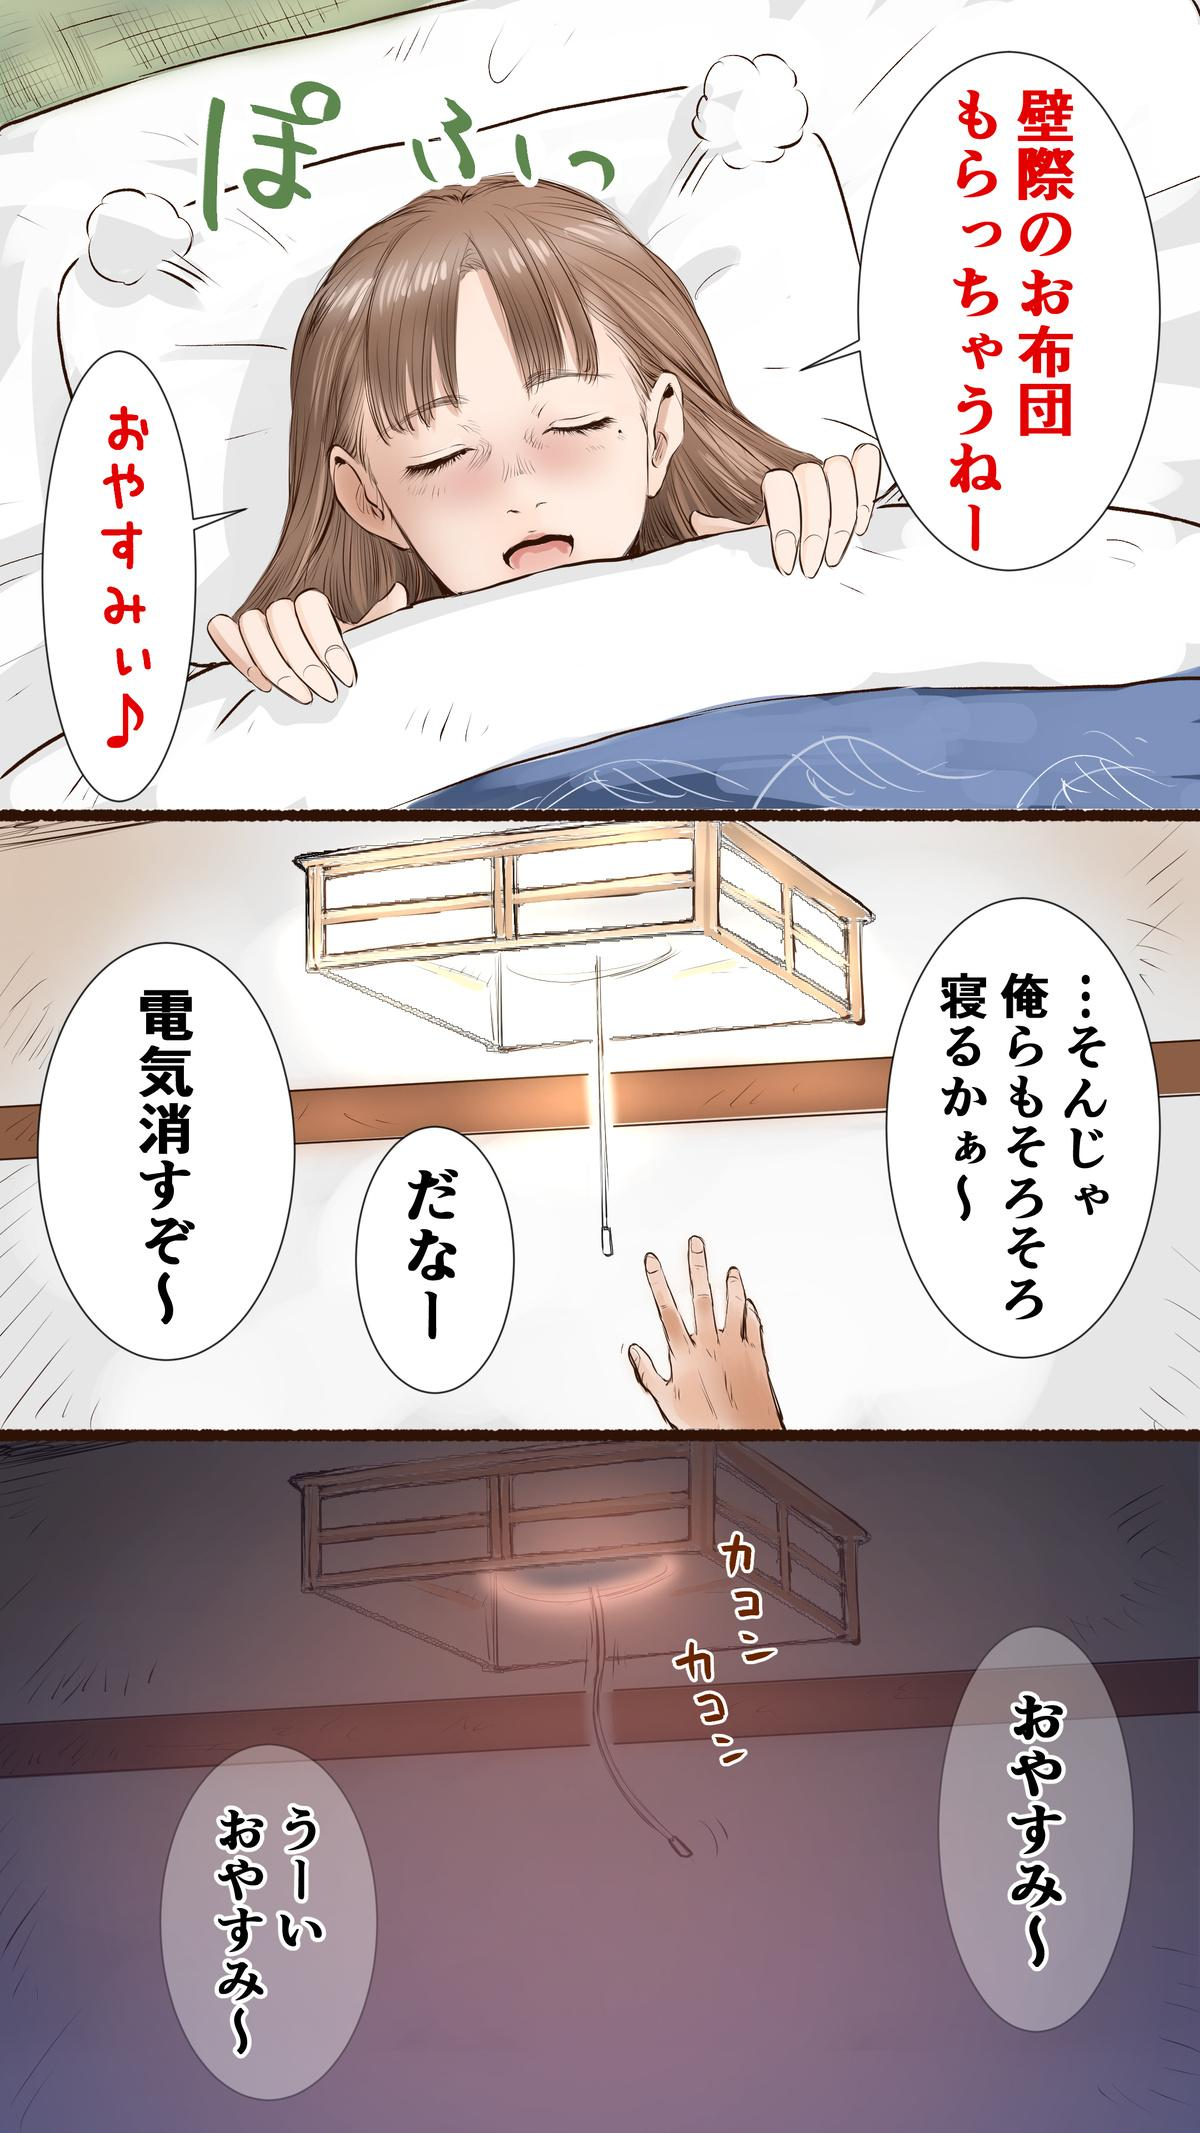 Story of Hot Spring Hotel 6